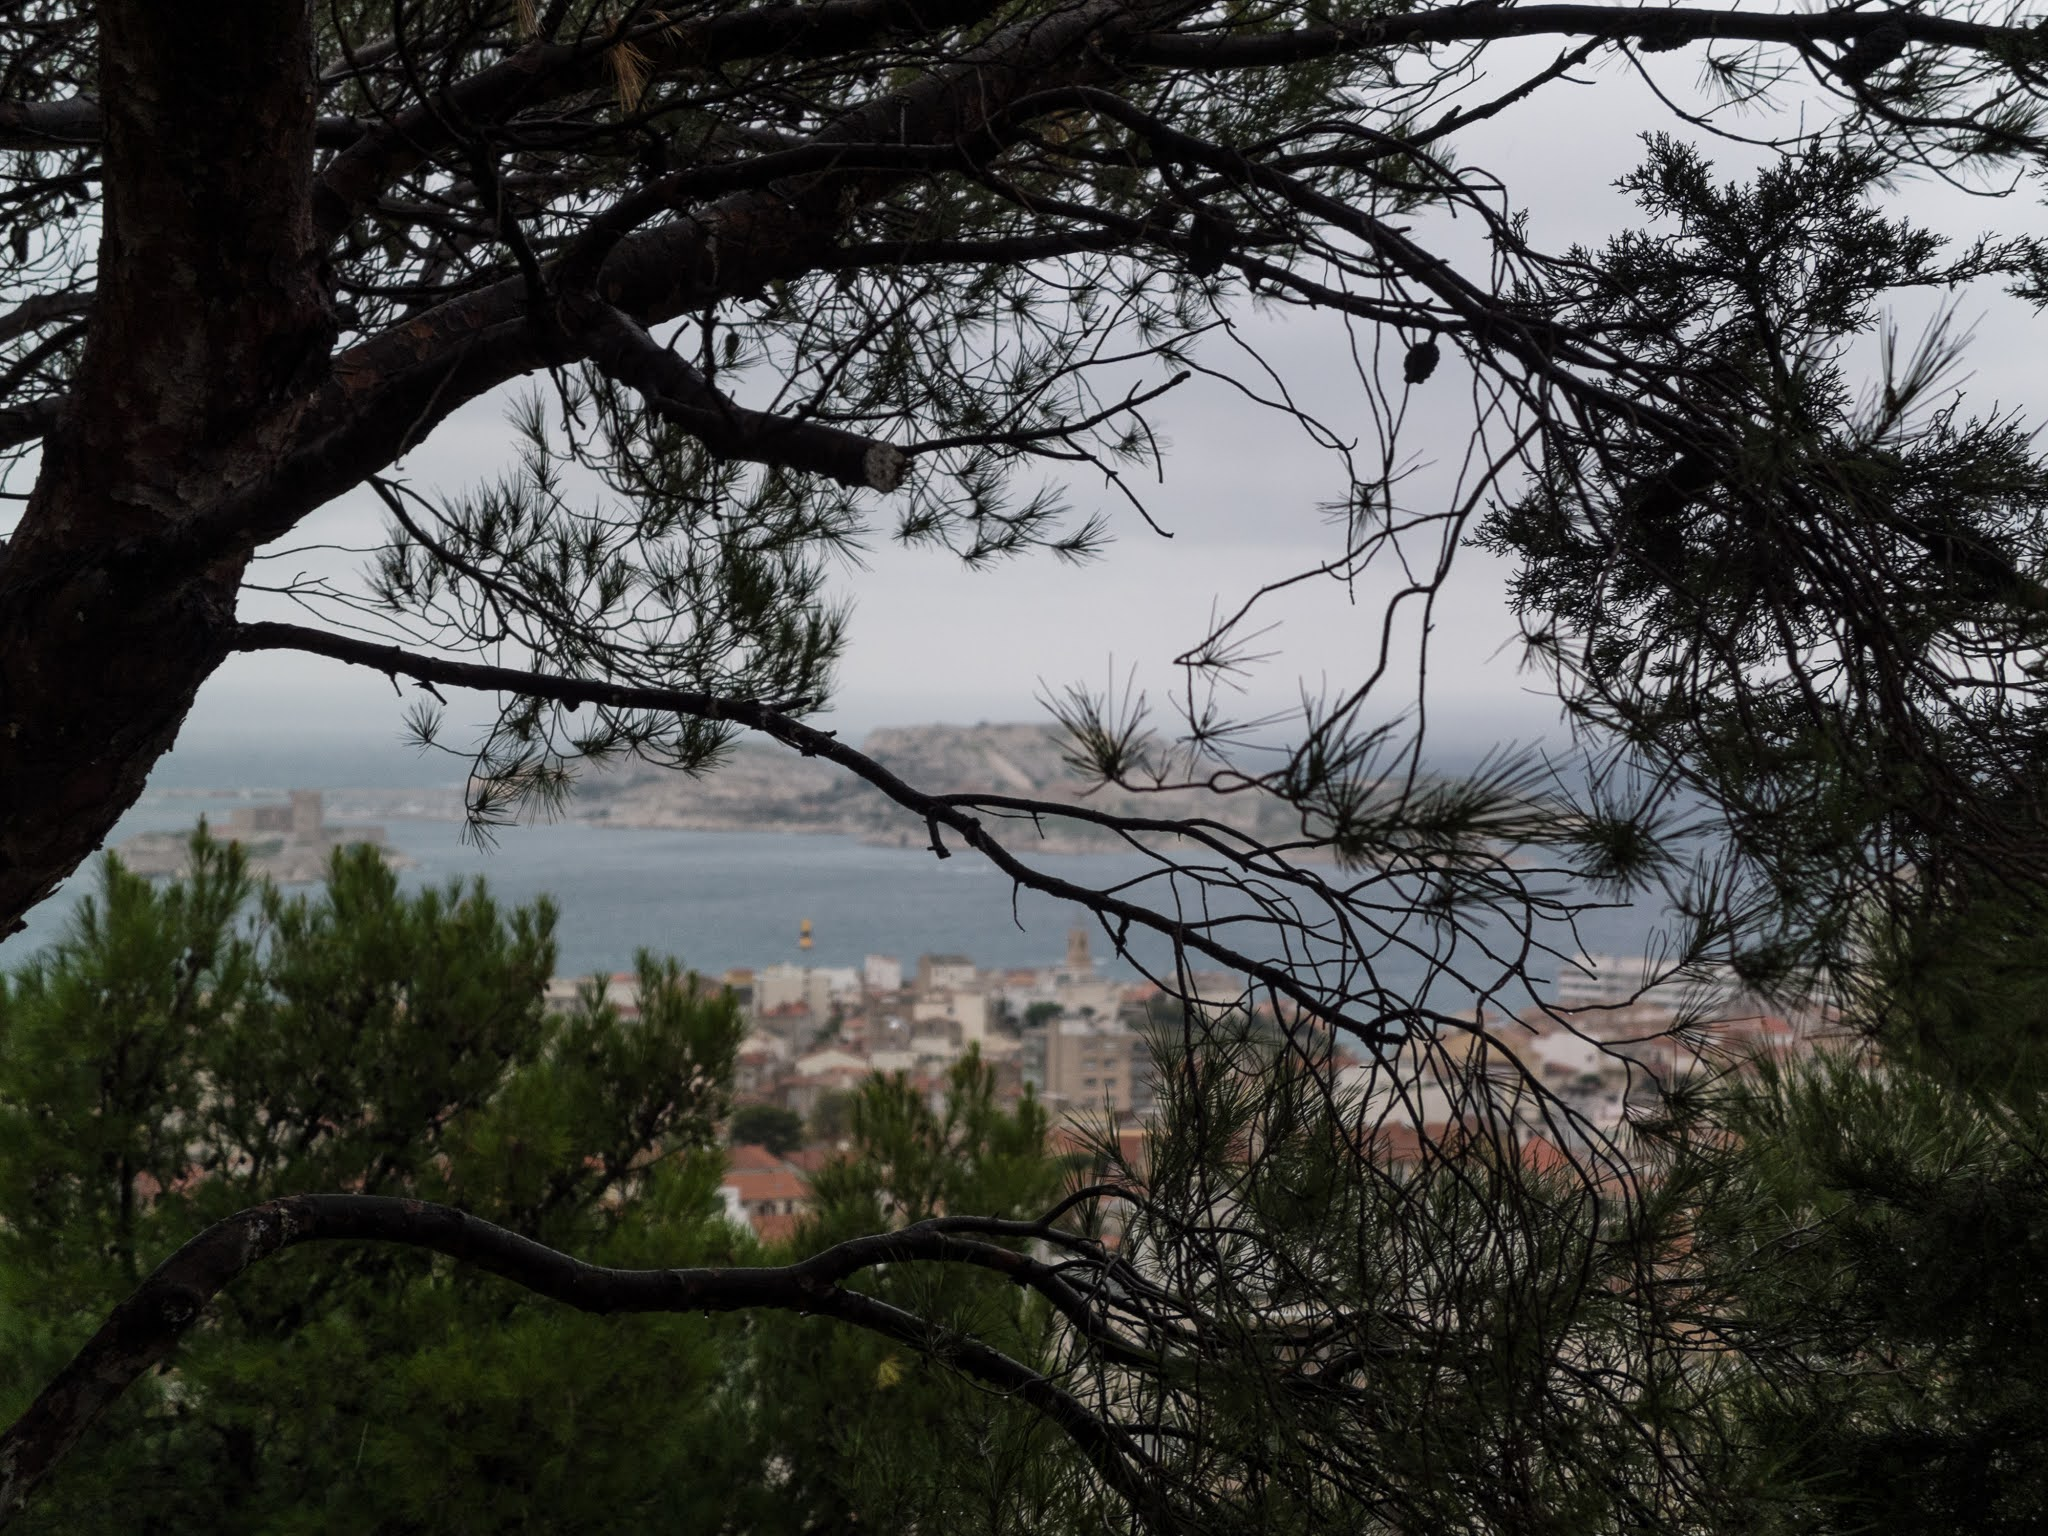 View of Les Îles du Frioul behind a large pine tree.